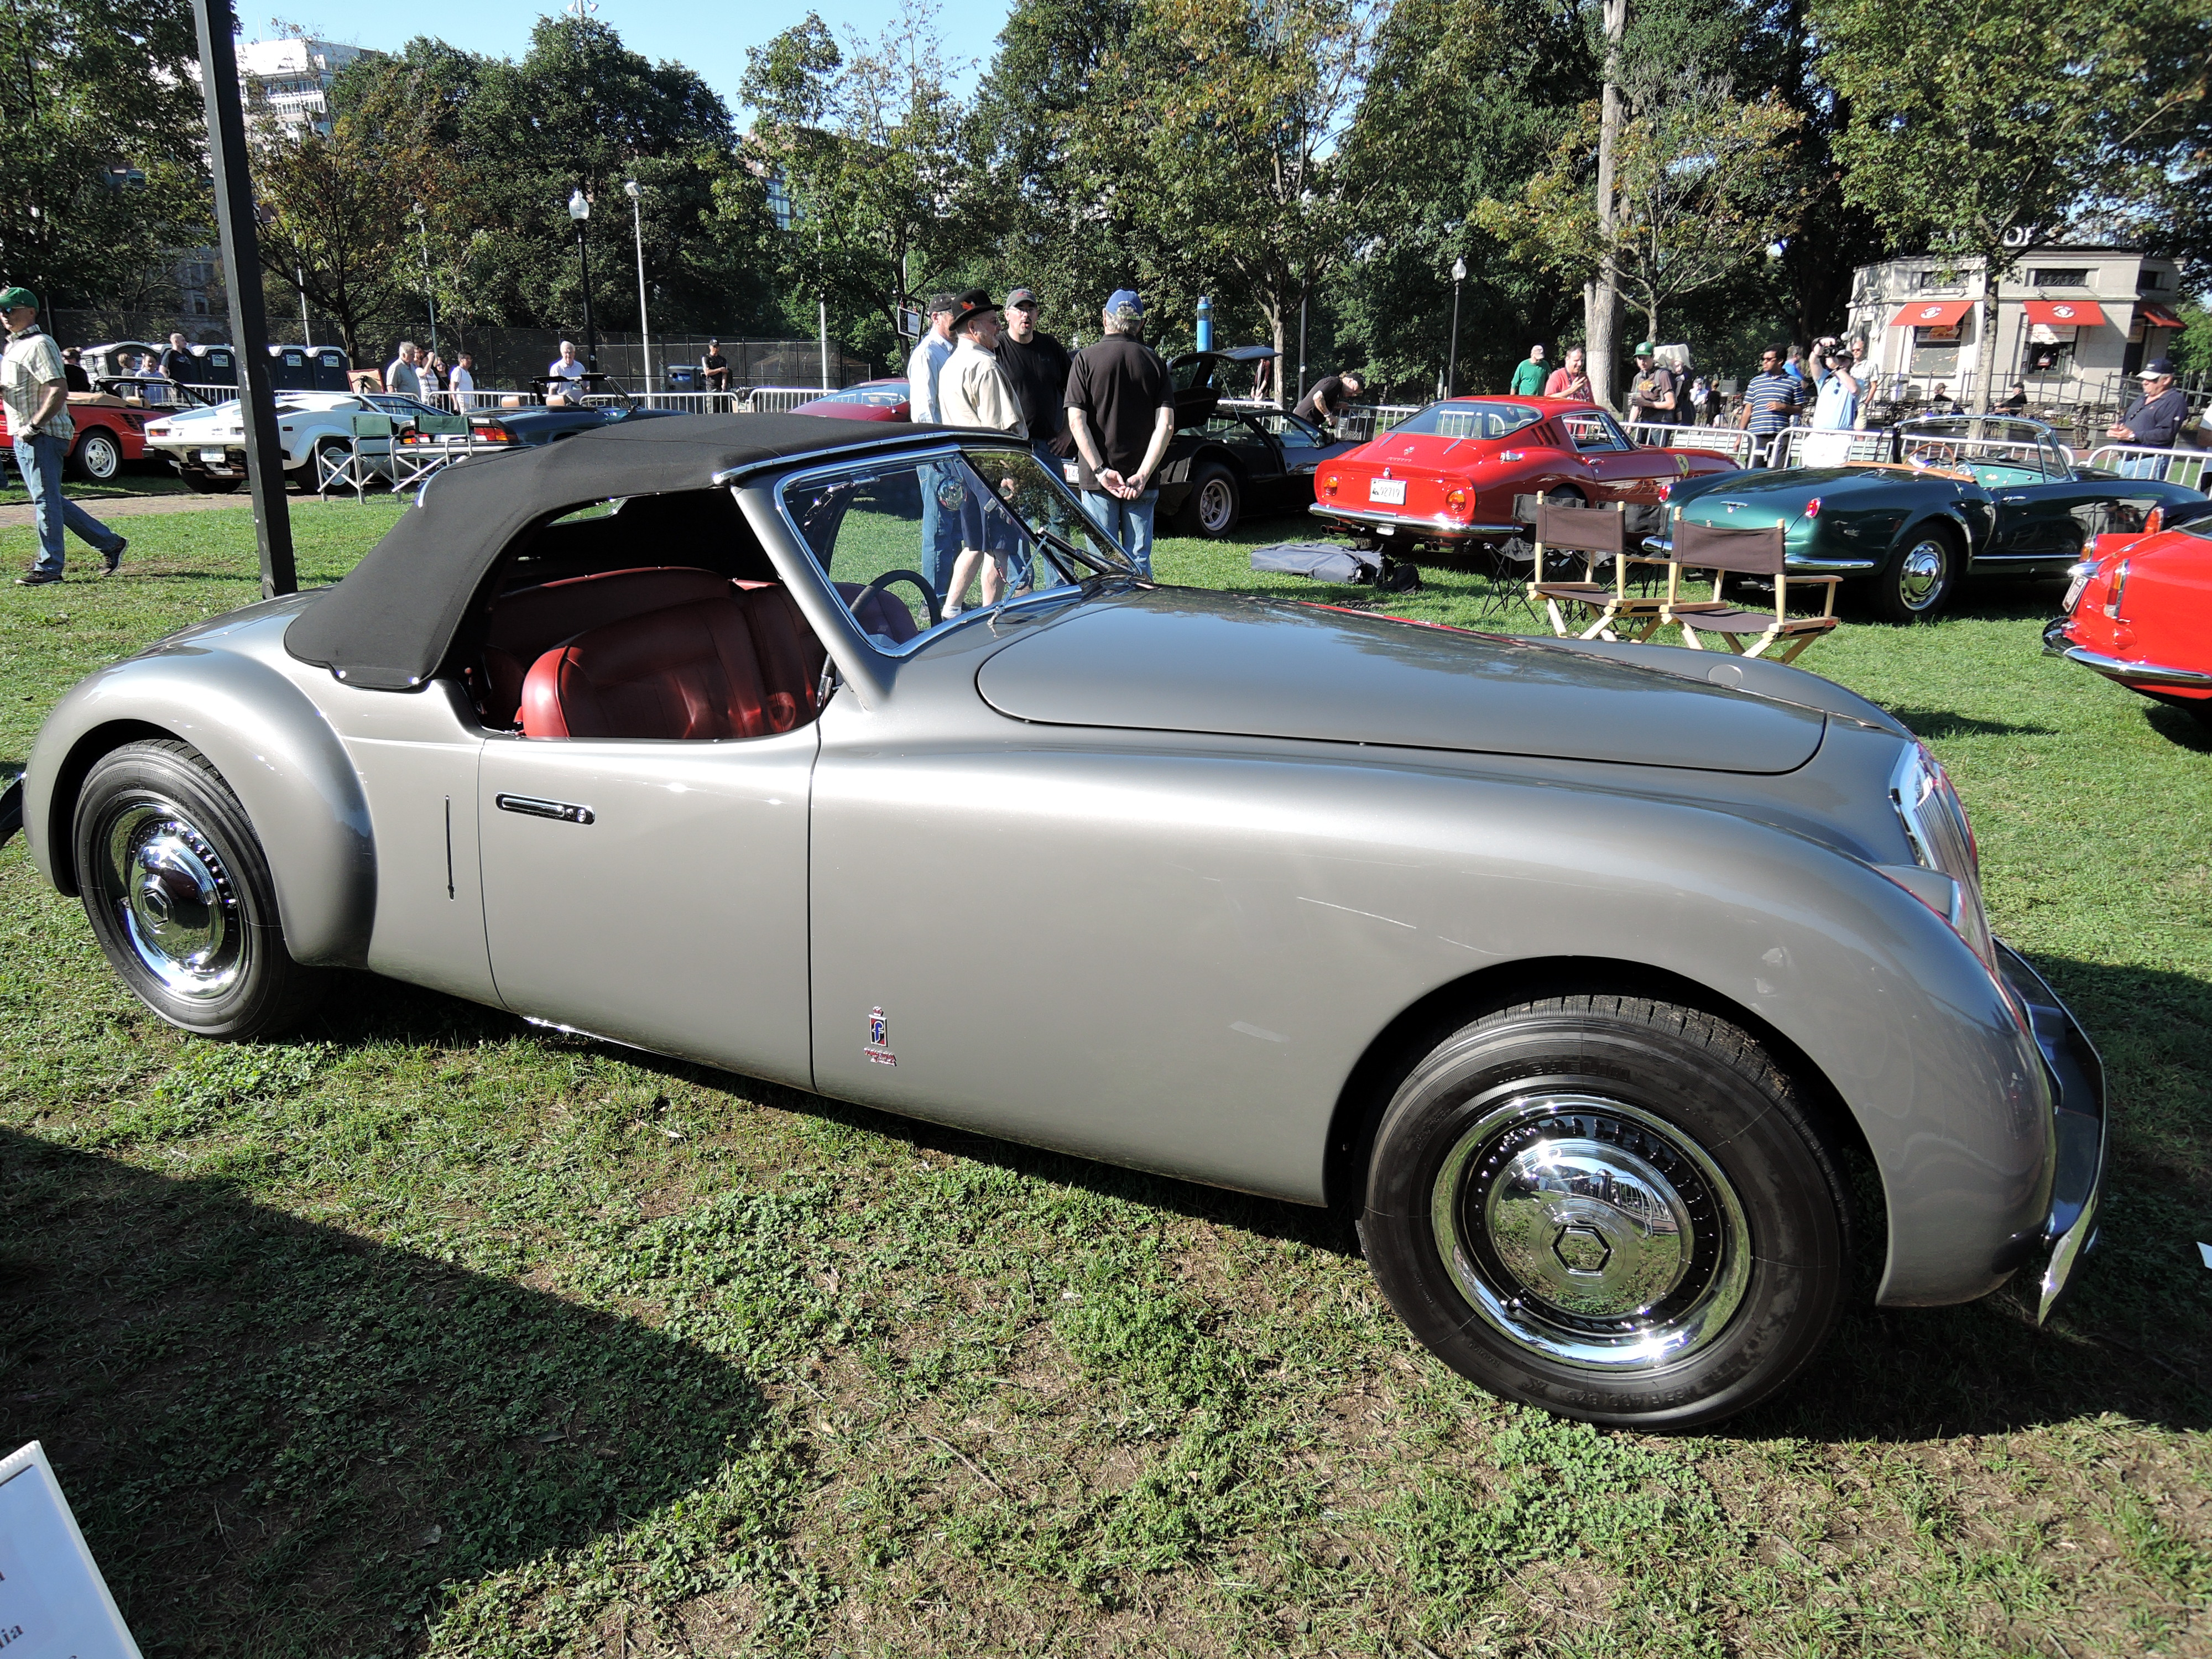 silver 1948 Lancia Pininfarina Speciale - The Boston Cup 2017